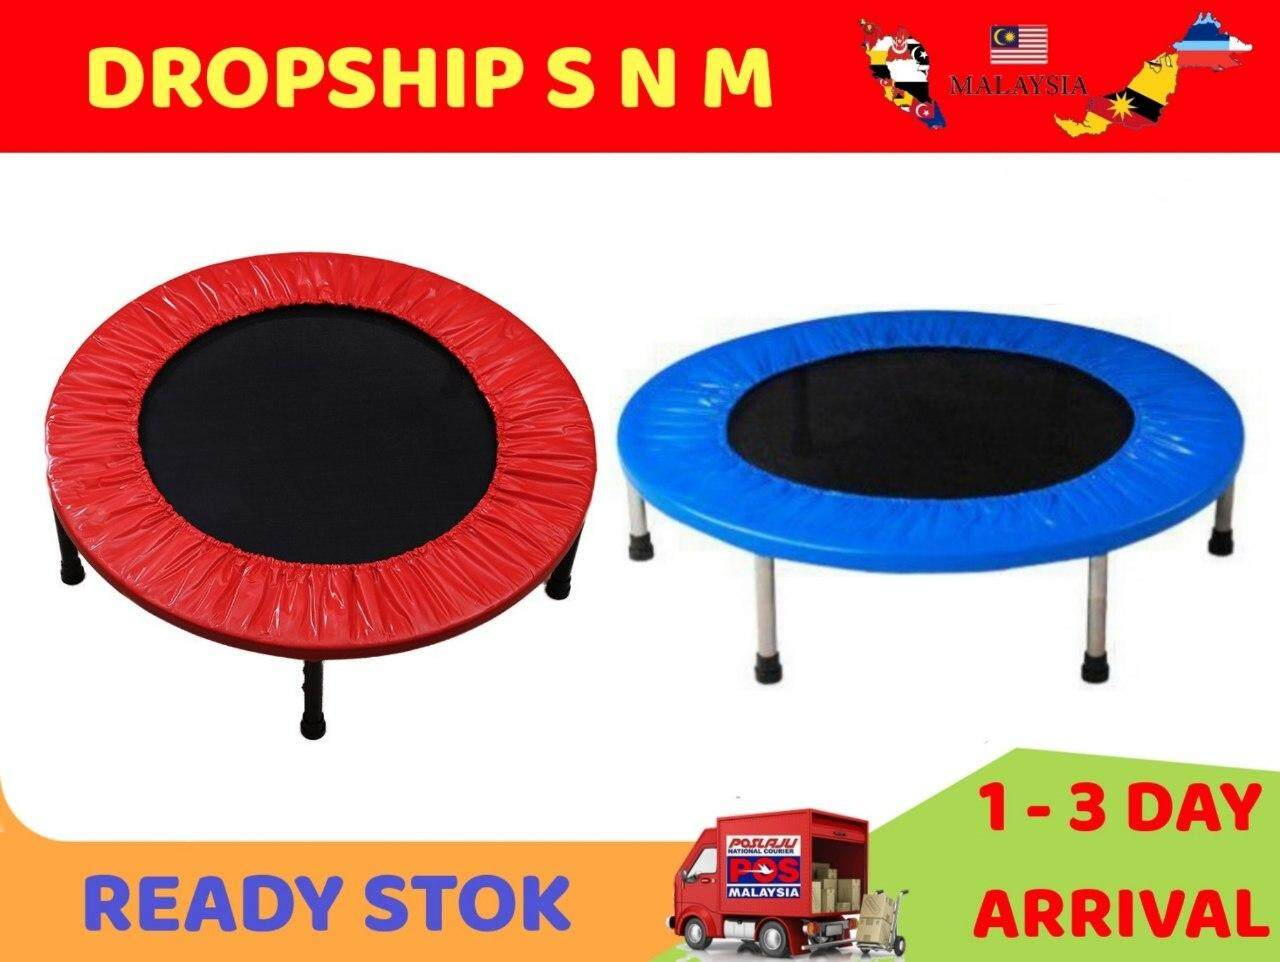 38 Inches Trampoline For Fitness And Heath Training (5kg)- By Sofea Network Marketing.